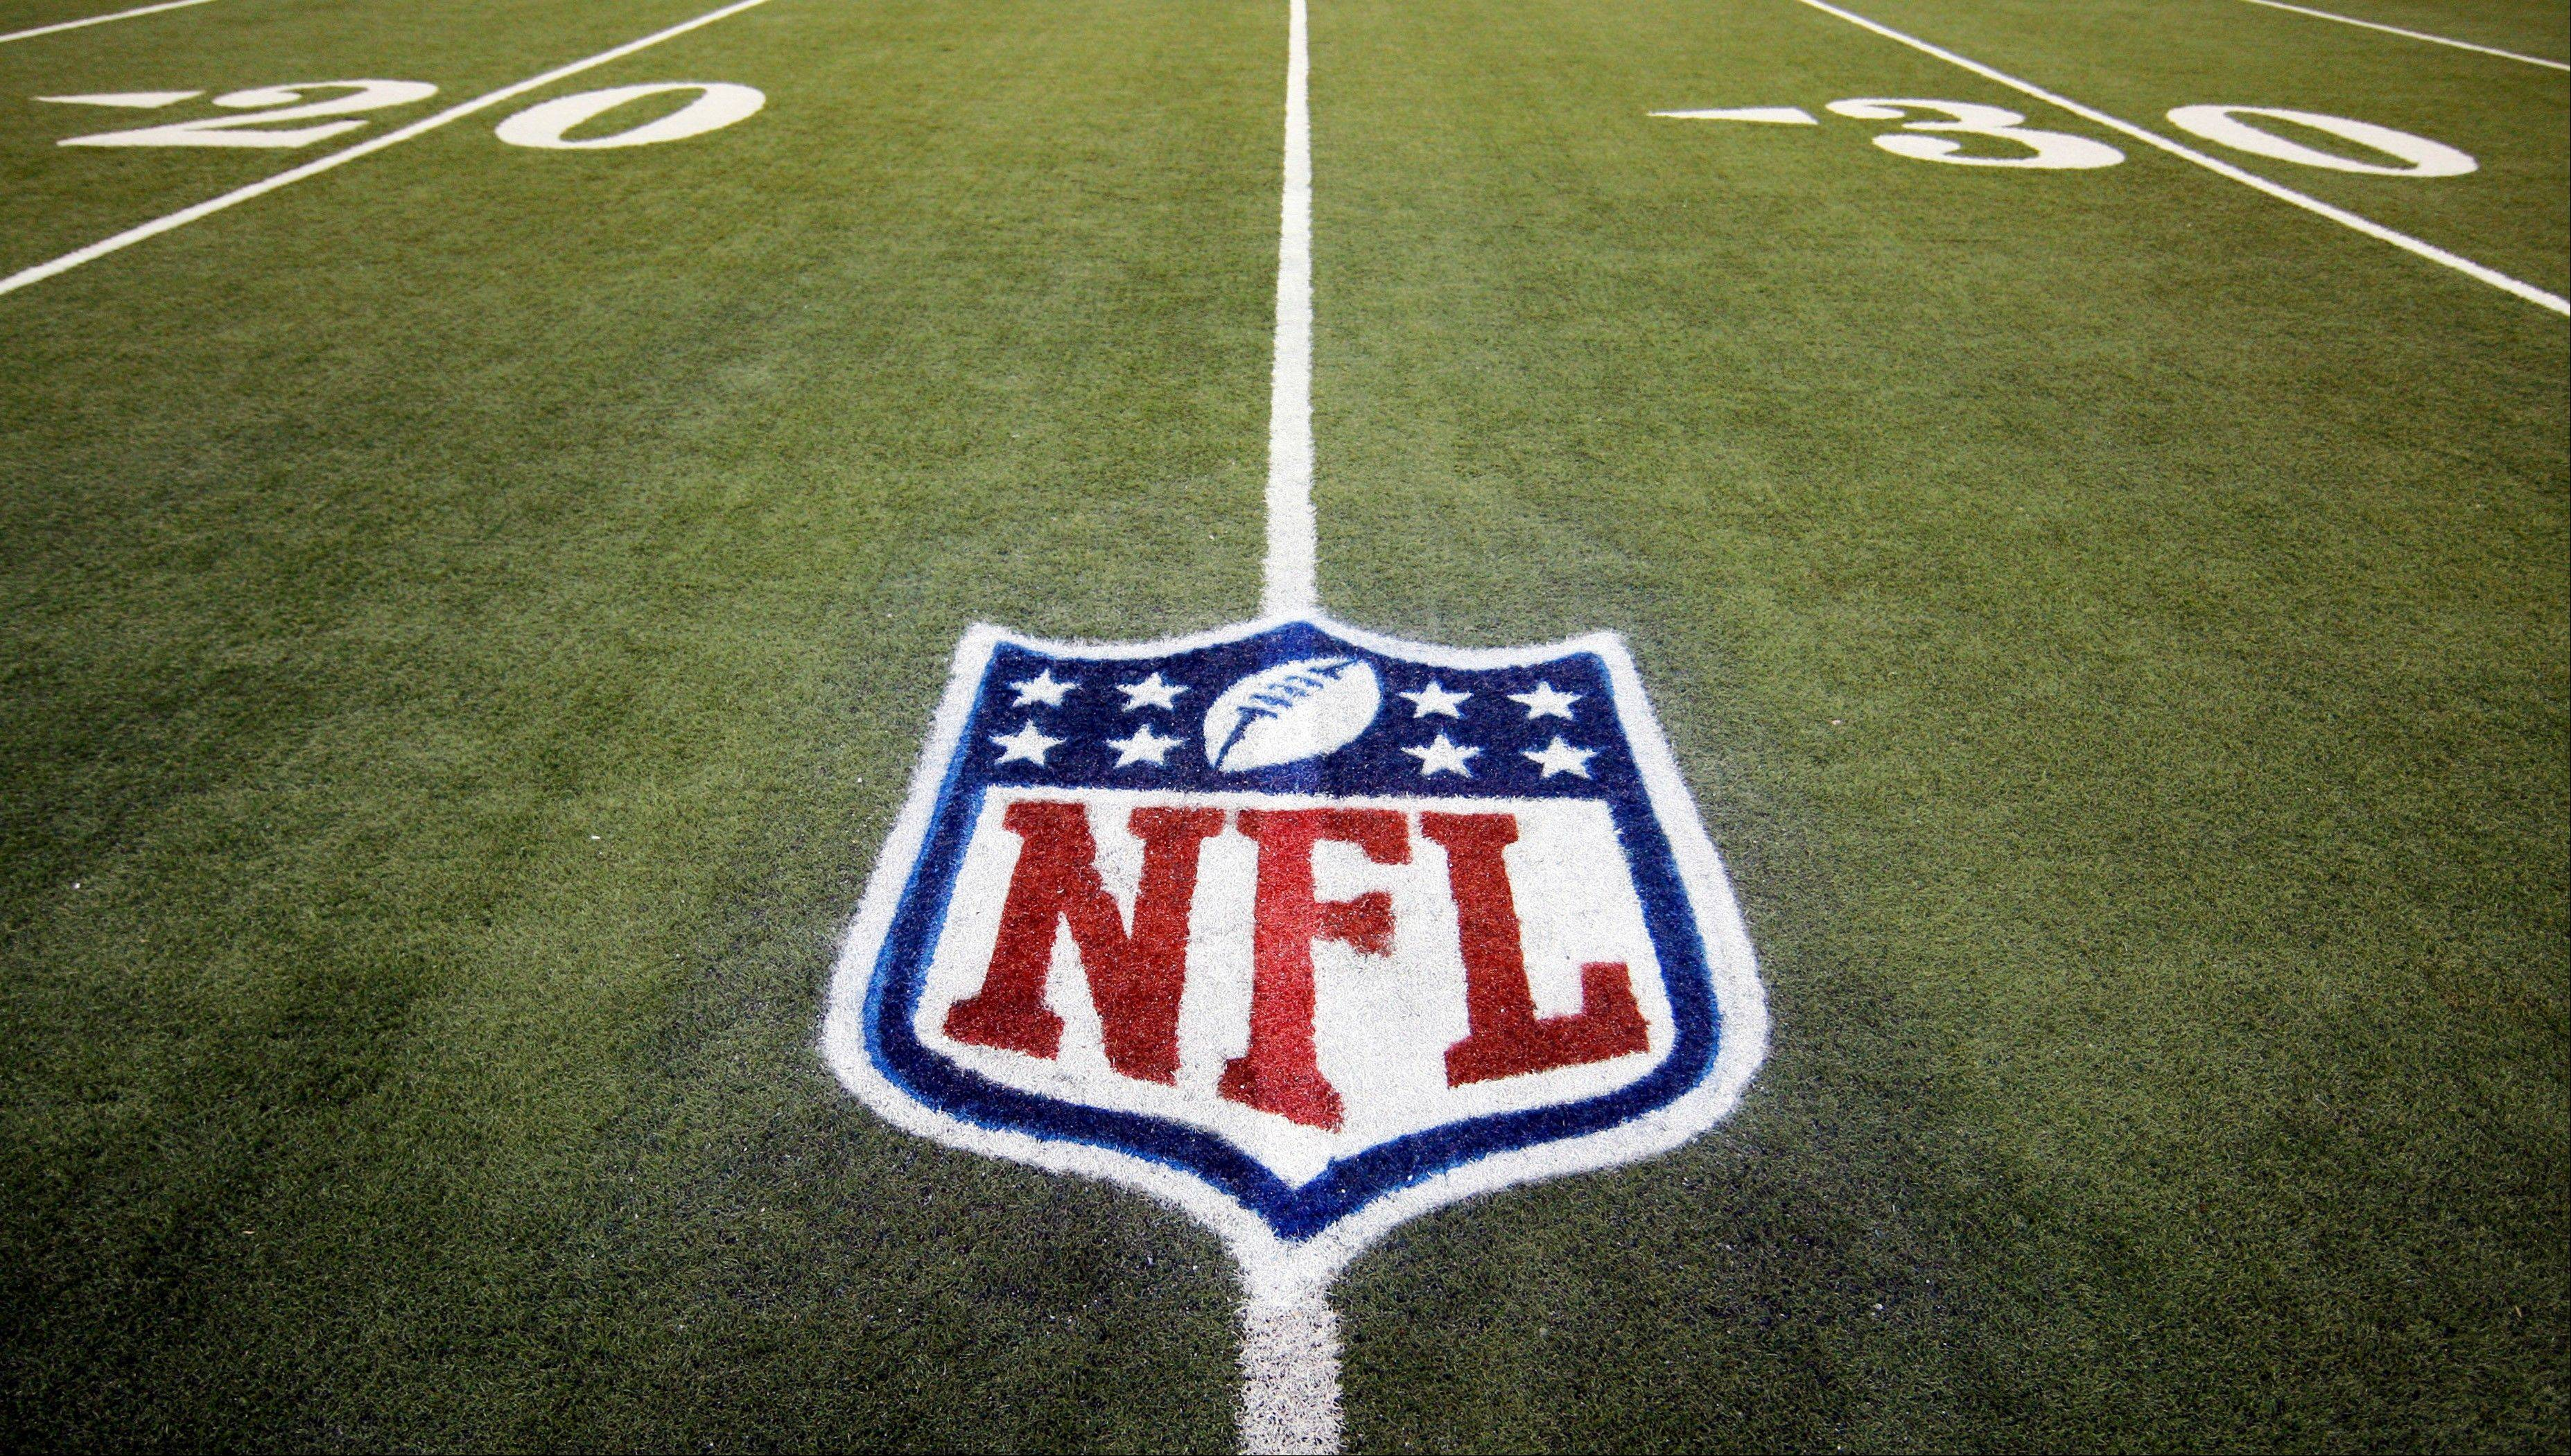 Google has been holding talks with the National Football League, raising speculation the internet monolith is seeking new inroads into television.